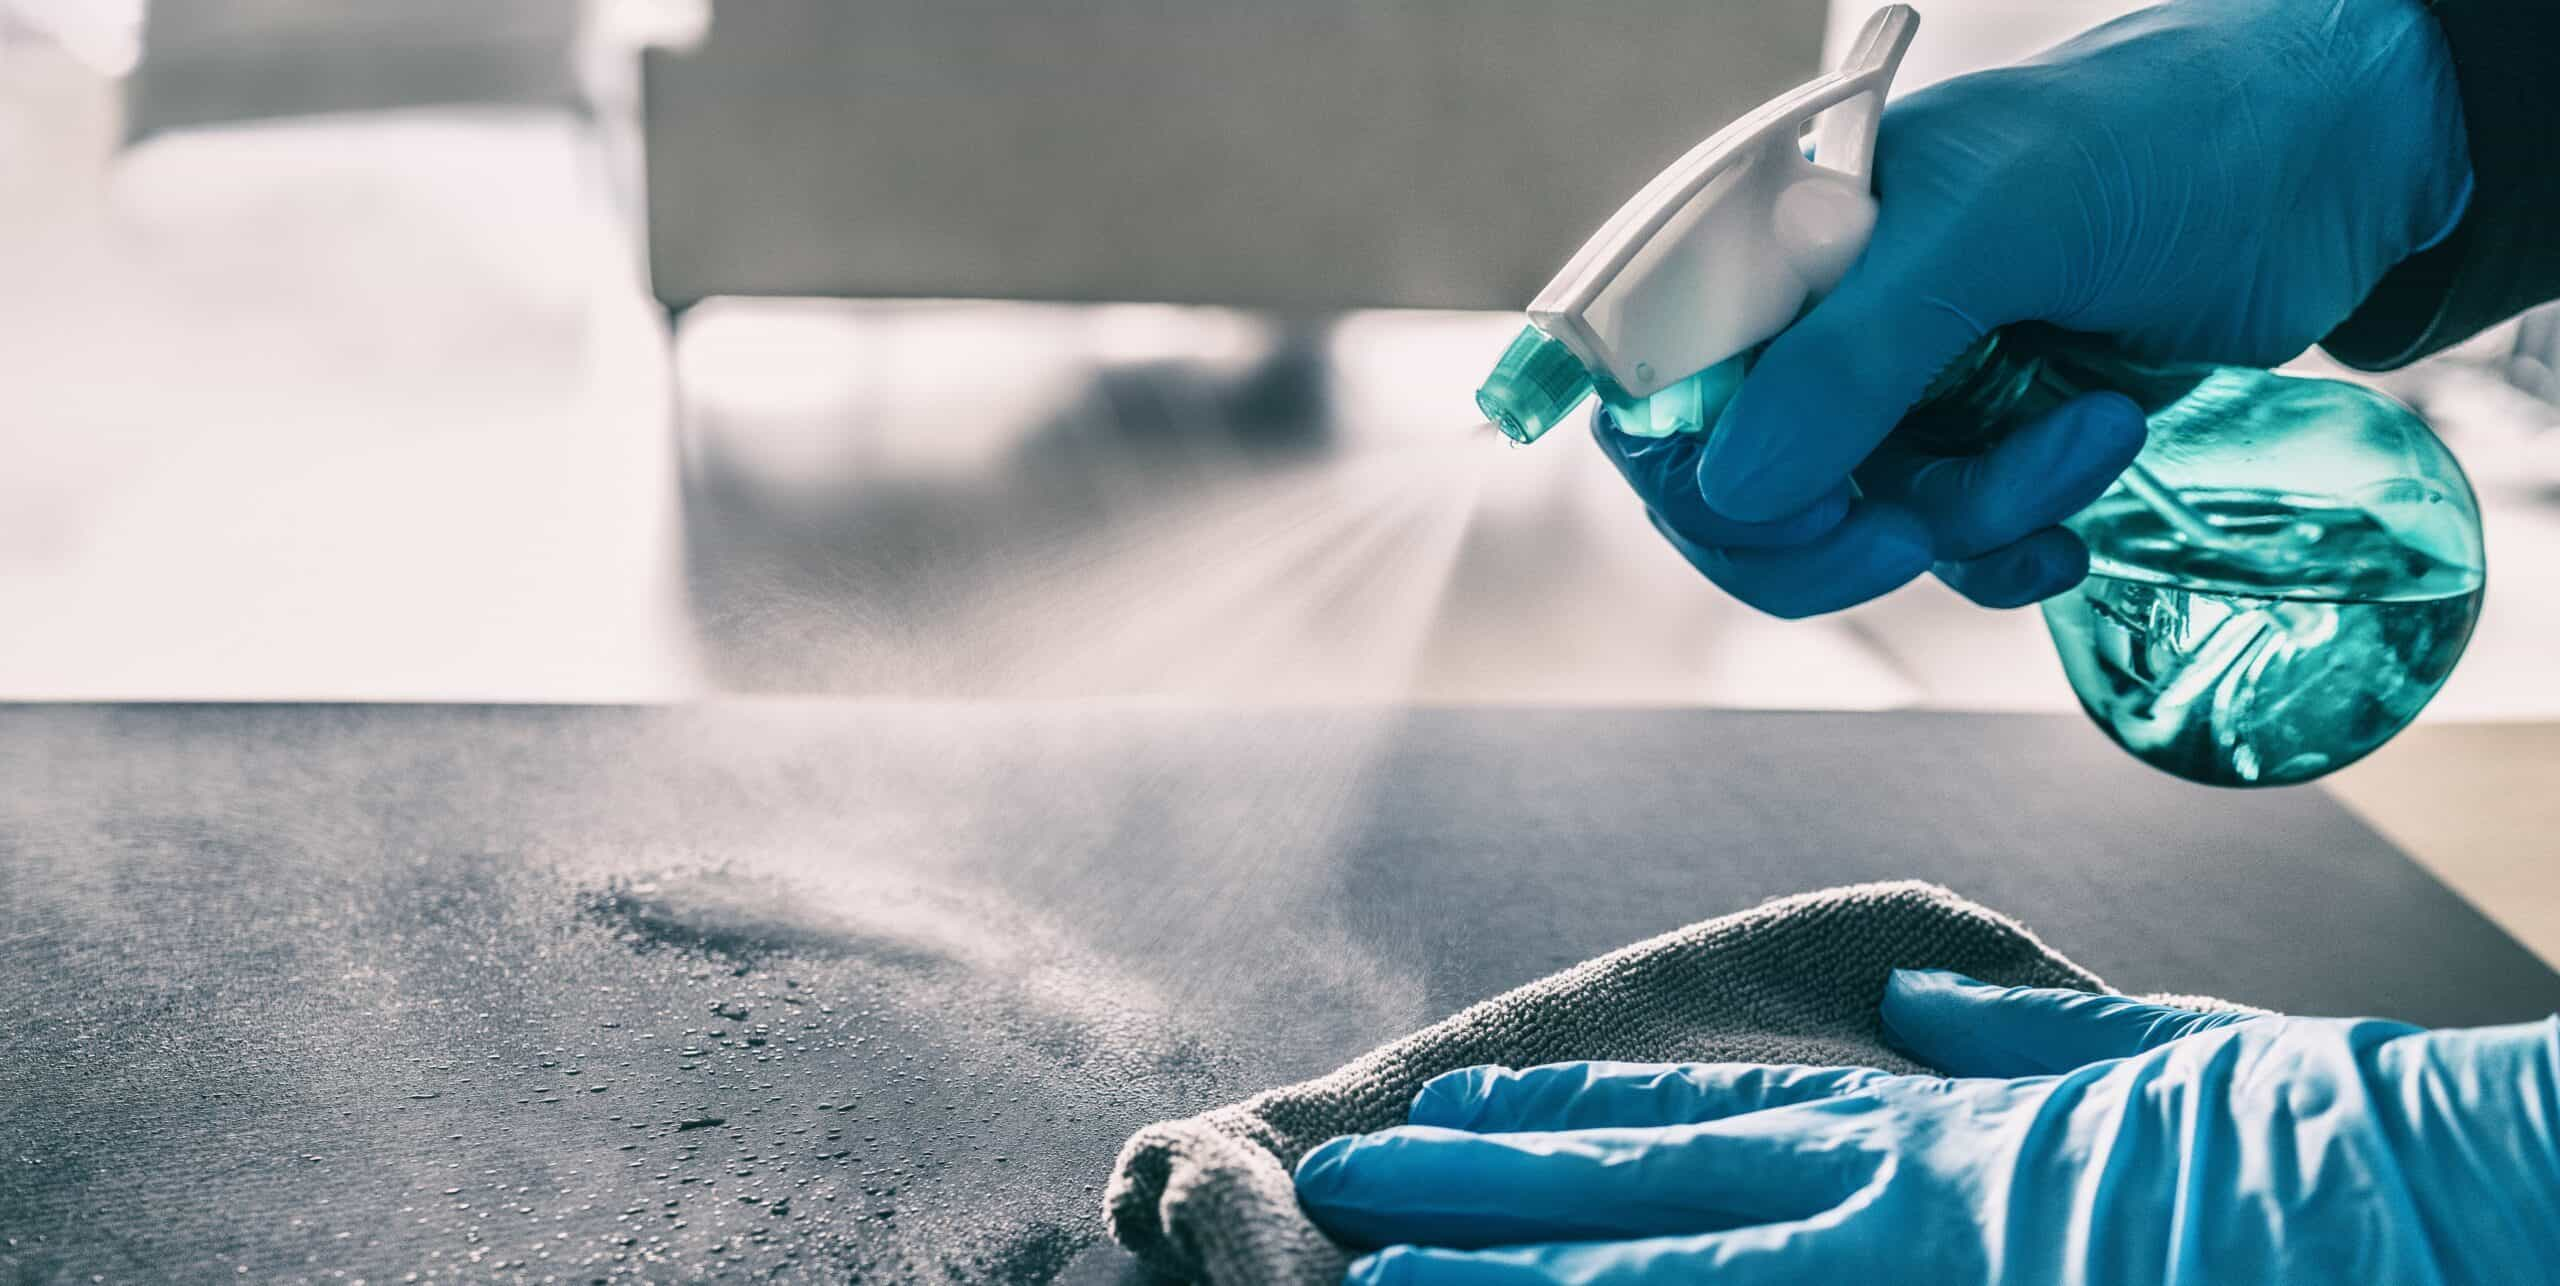 Sanitizing protocol with chemical spray